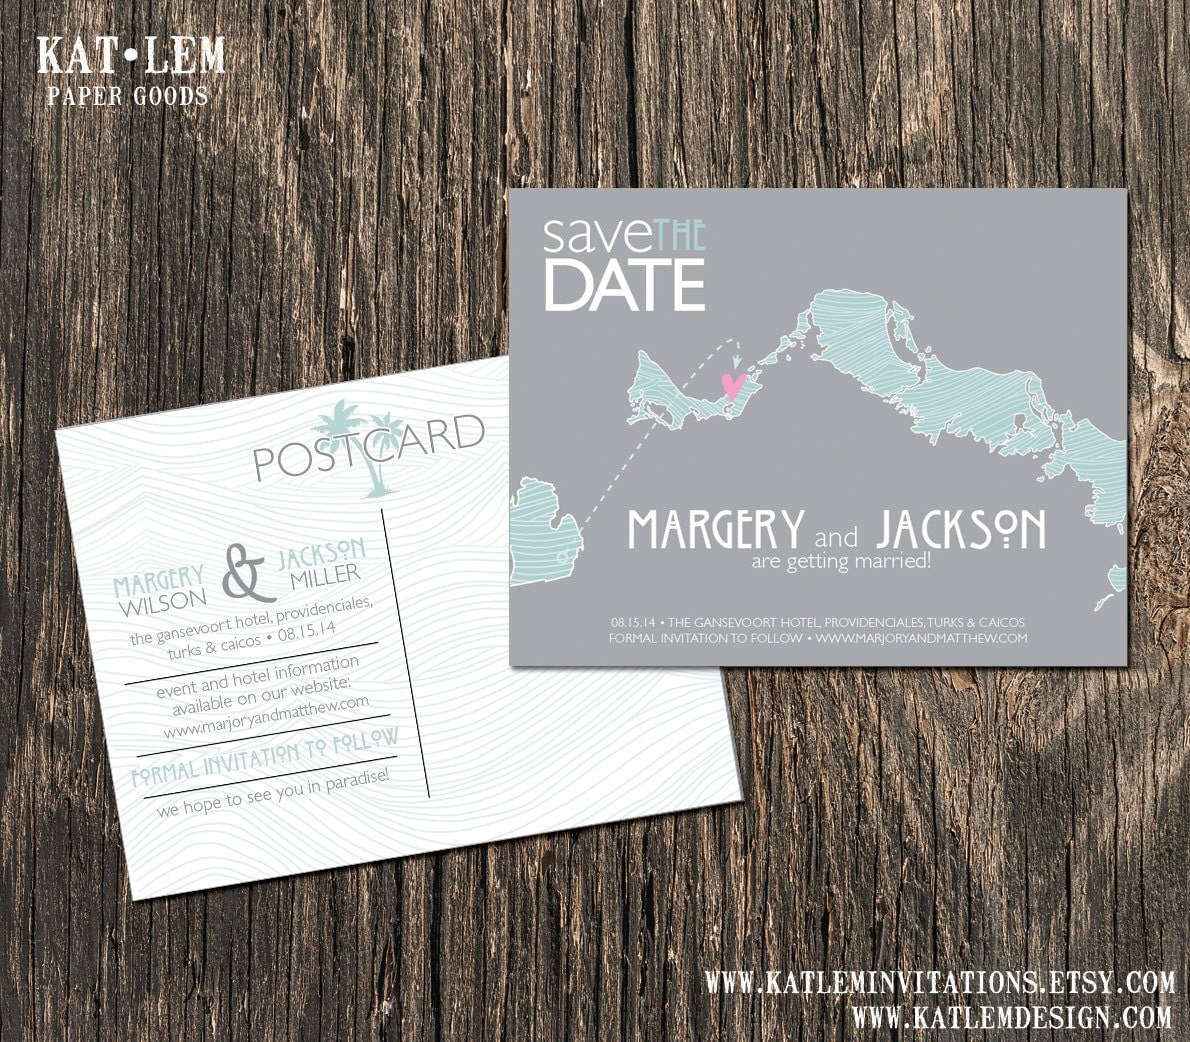 Turks and Caicos Beach Save the Dates Destination Wedding – Destination Wedding Save the Date Magnets